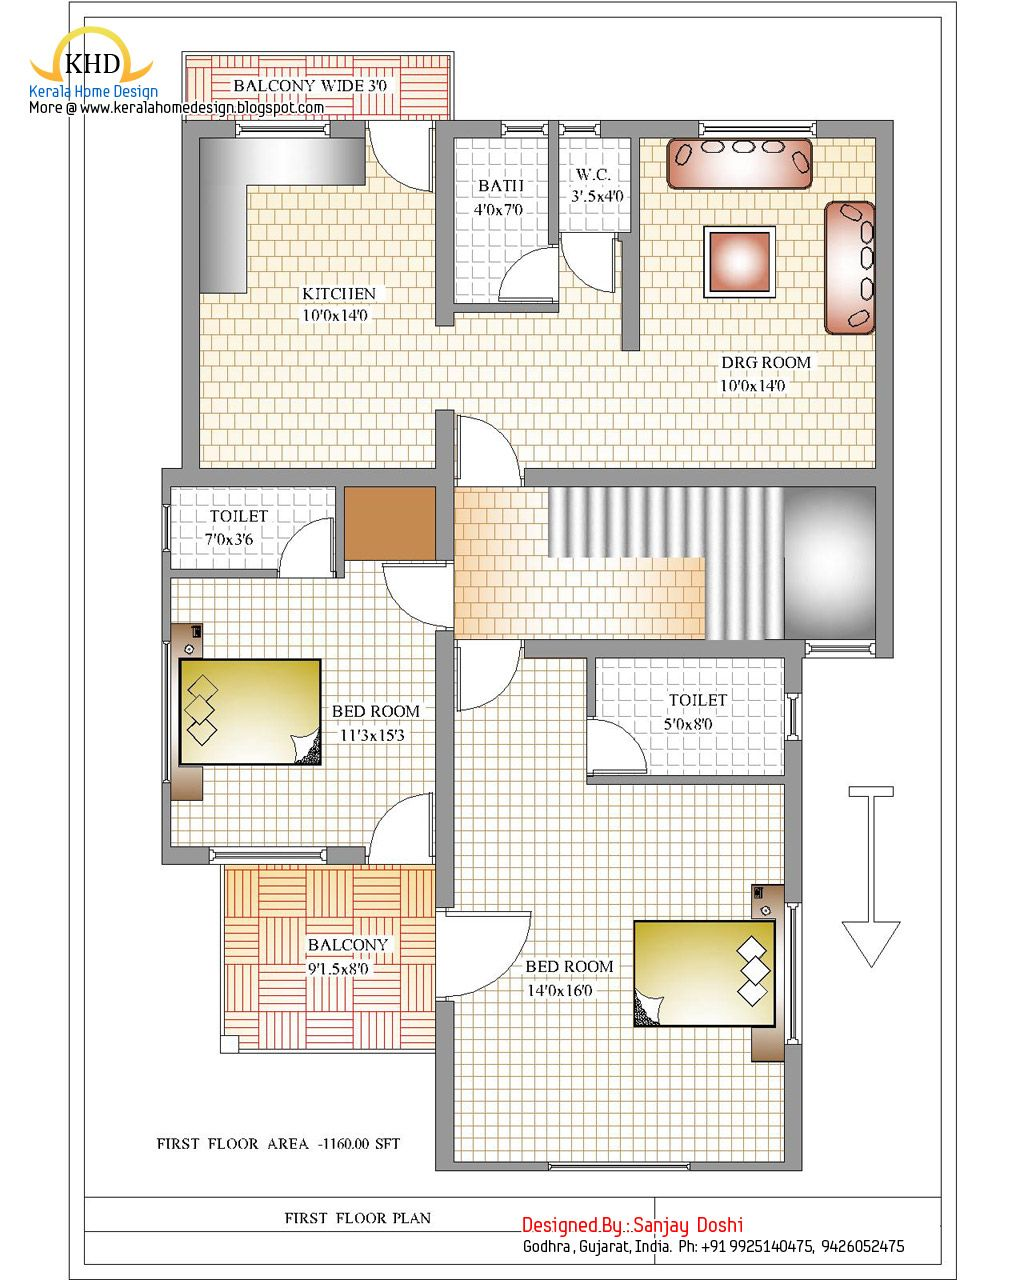 Home Design Plans house layout design Duplex House Floor Plans Stairs Pinned By Wwwmodlarcom